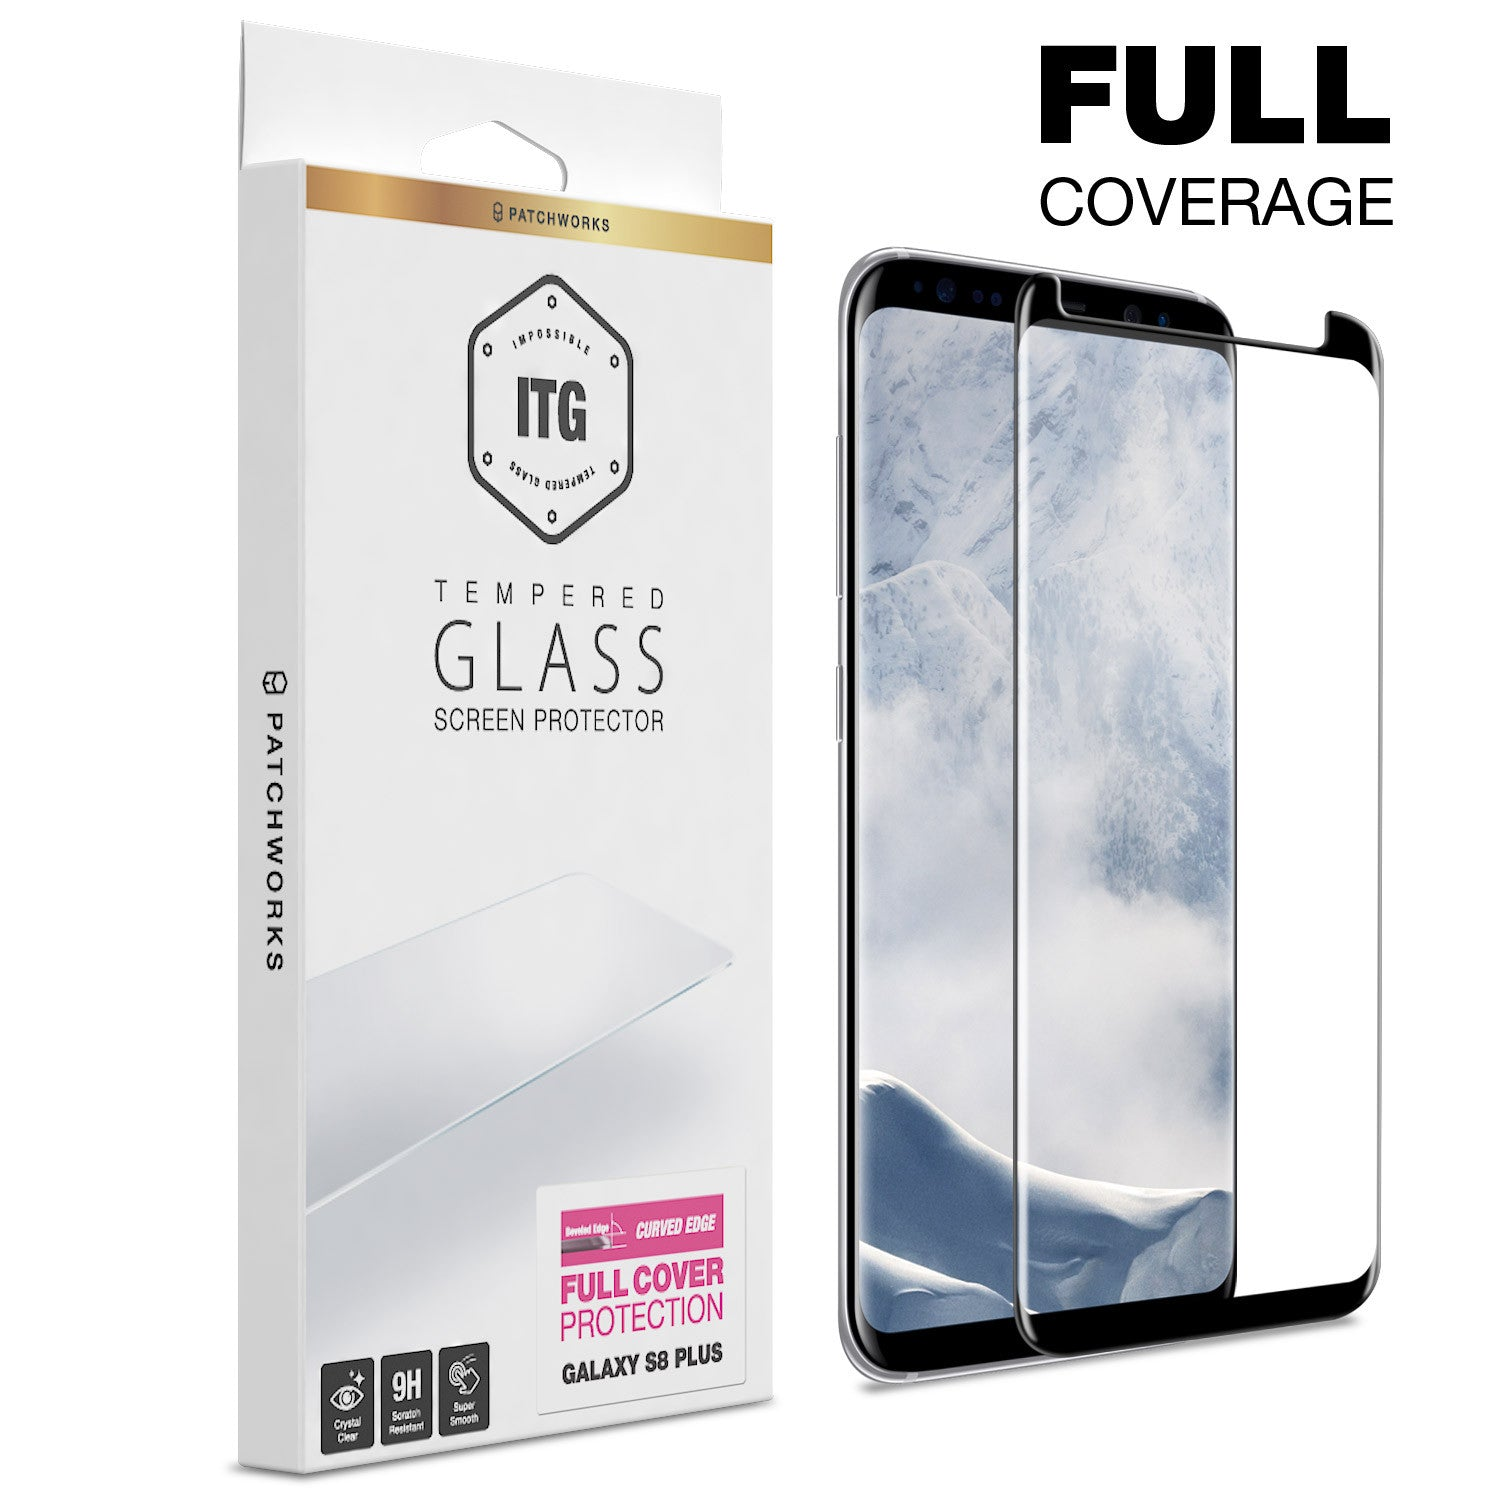 Galaxy S8 Plus Glass Screen Protector - ITG FULL COVER